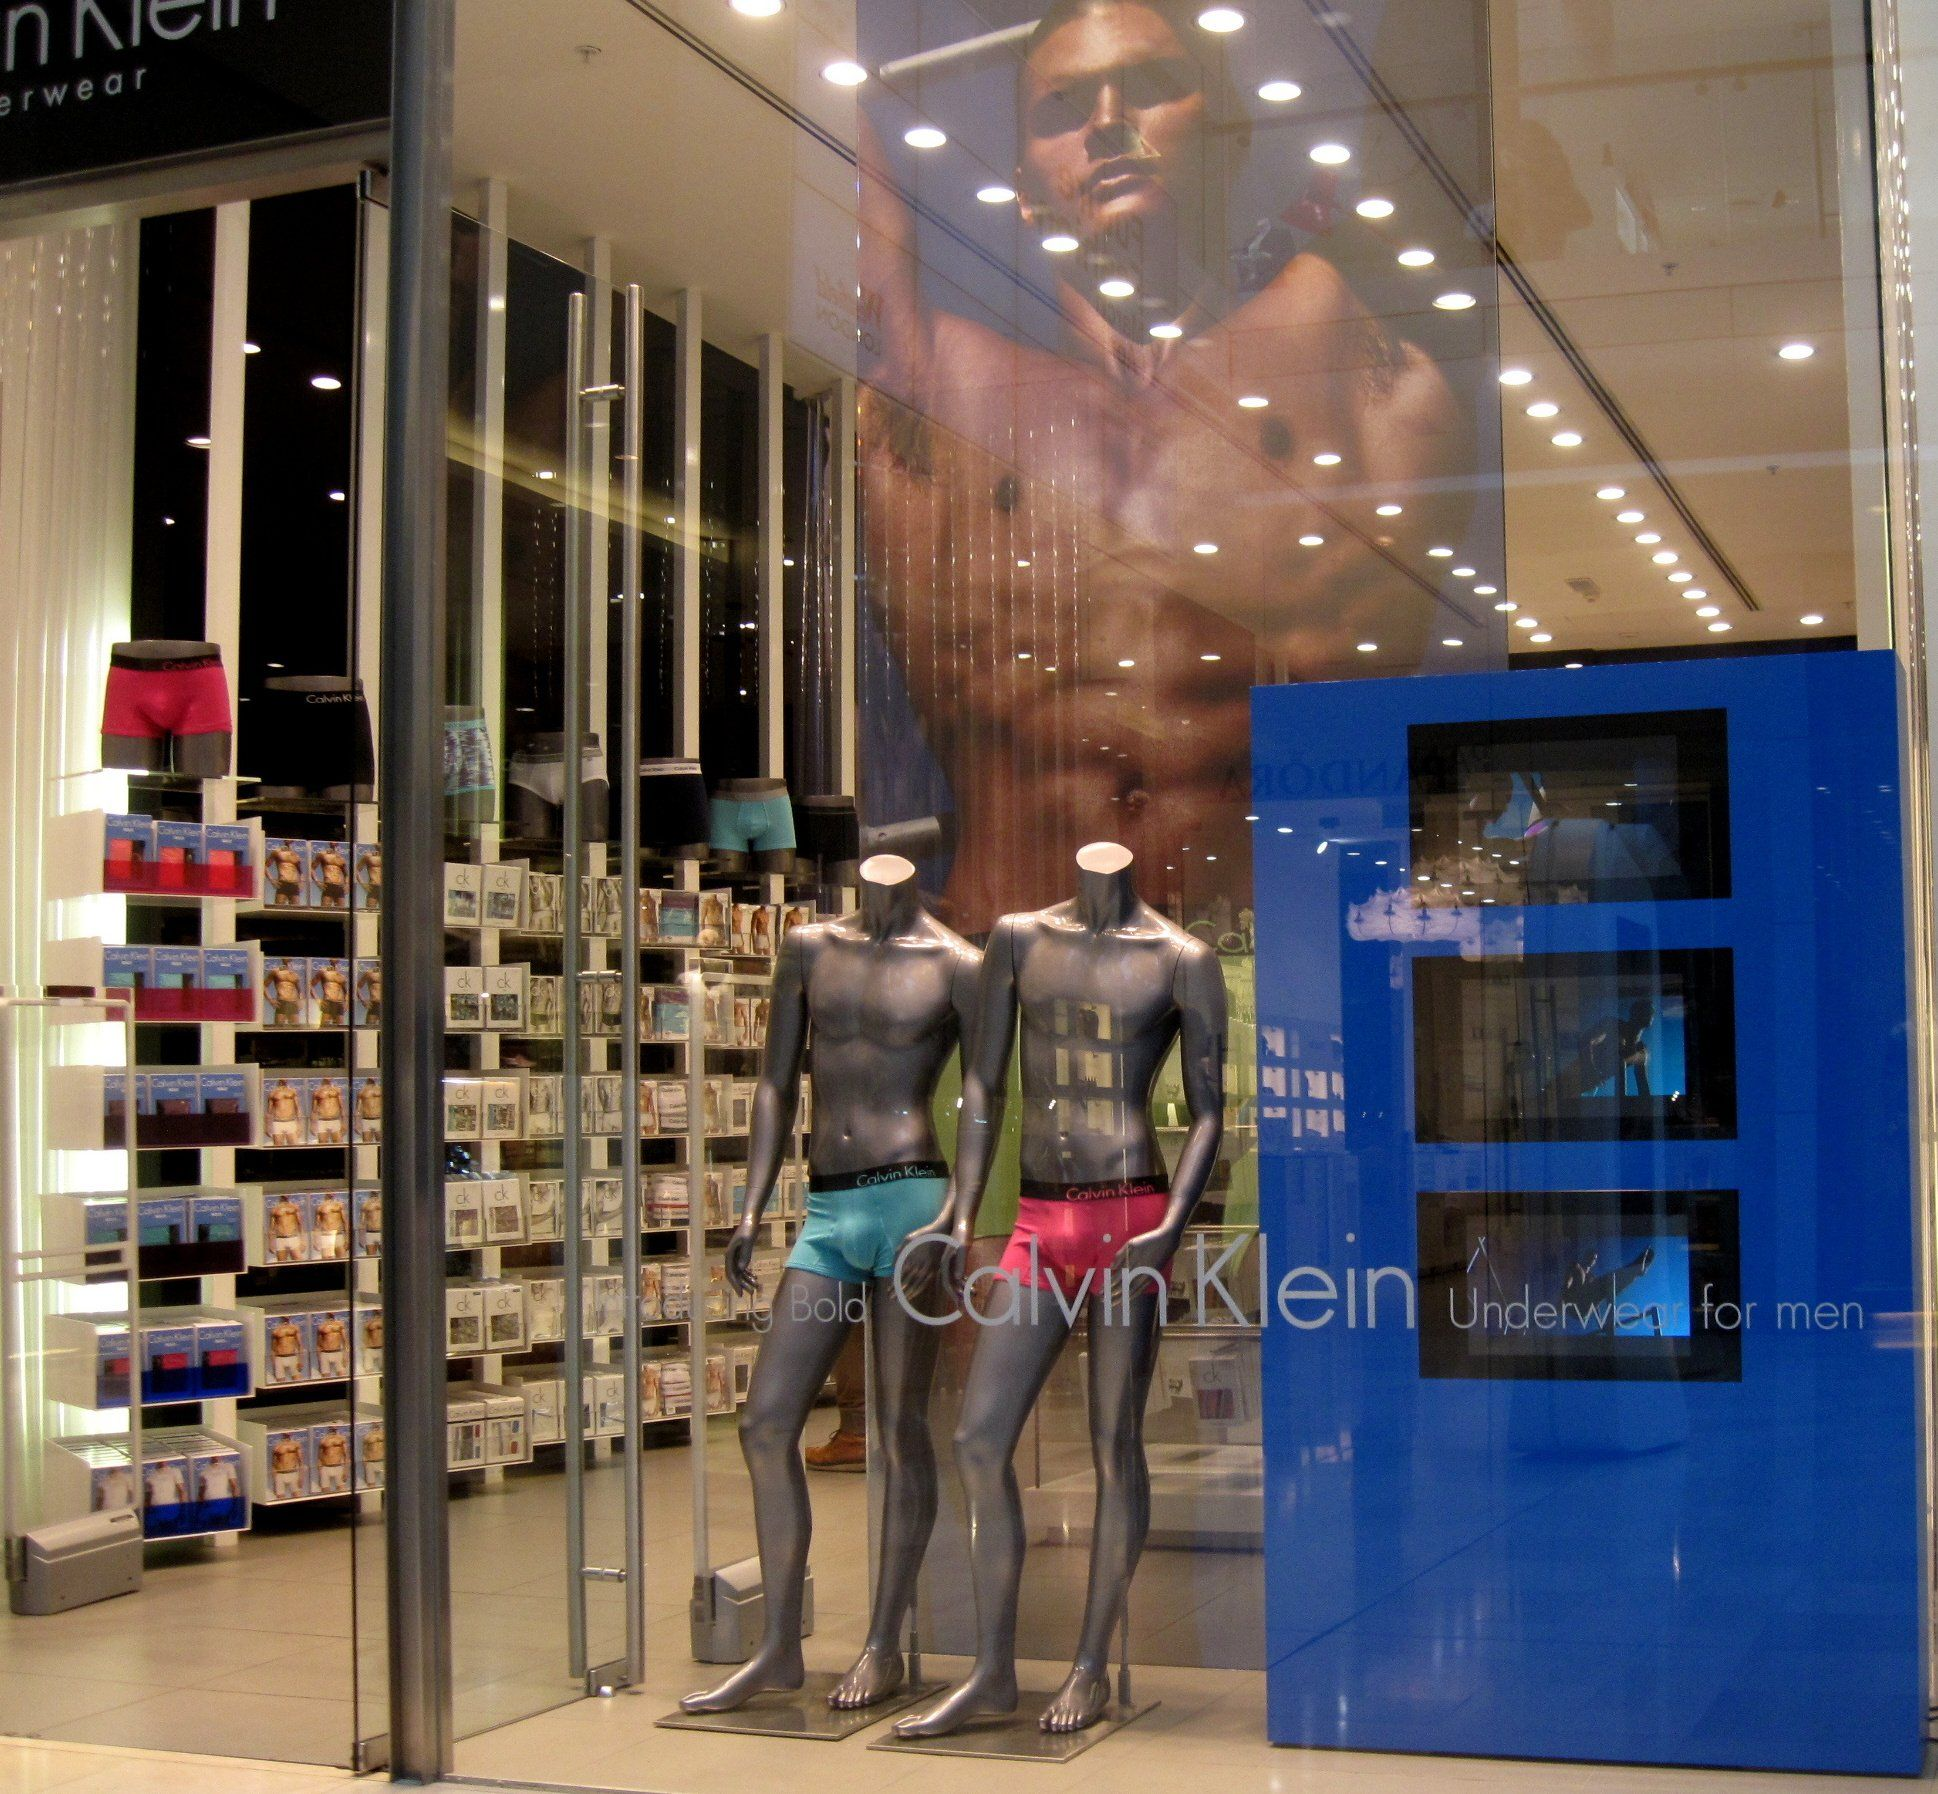 17 Best images about Retail Store Design Underwear on Pinterest ...